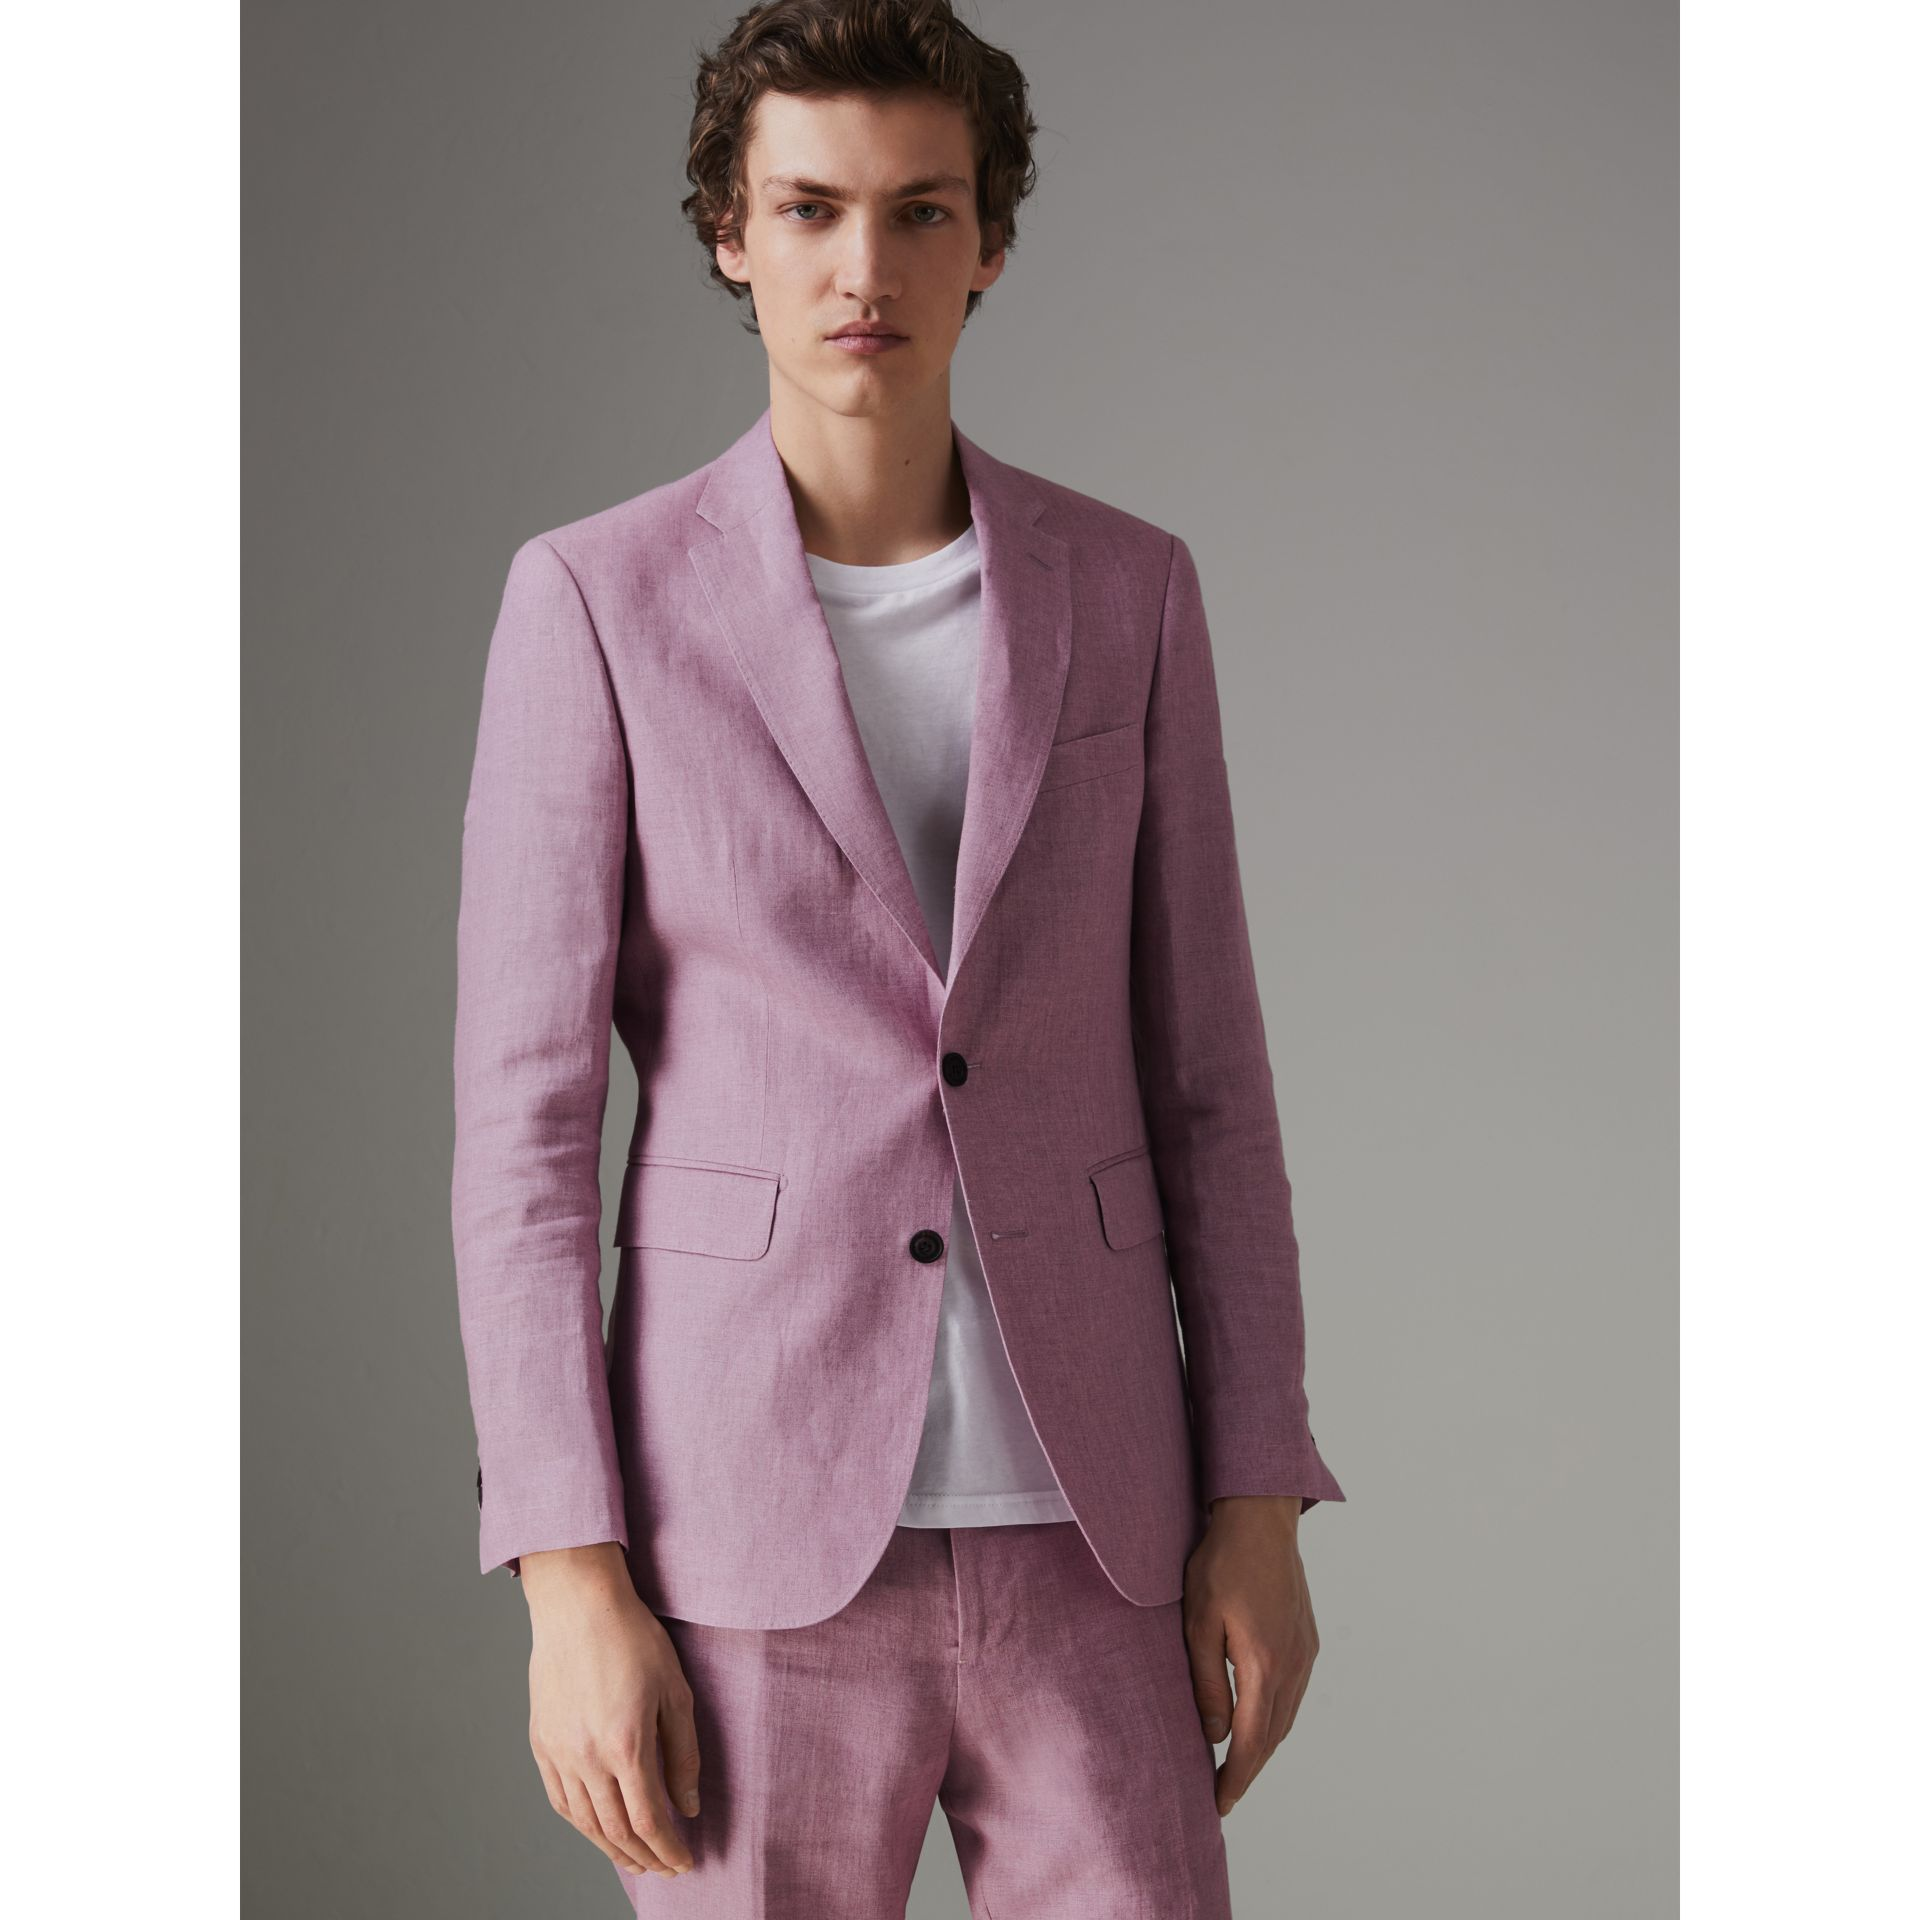 Soho Fit Linen Tailored Jacket in Pink Heather - Men | Burberry - gallery image 5